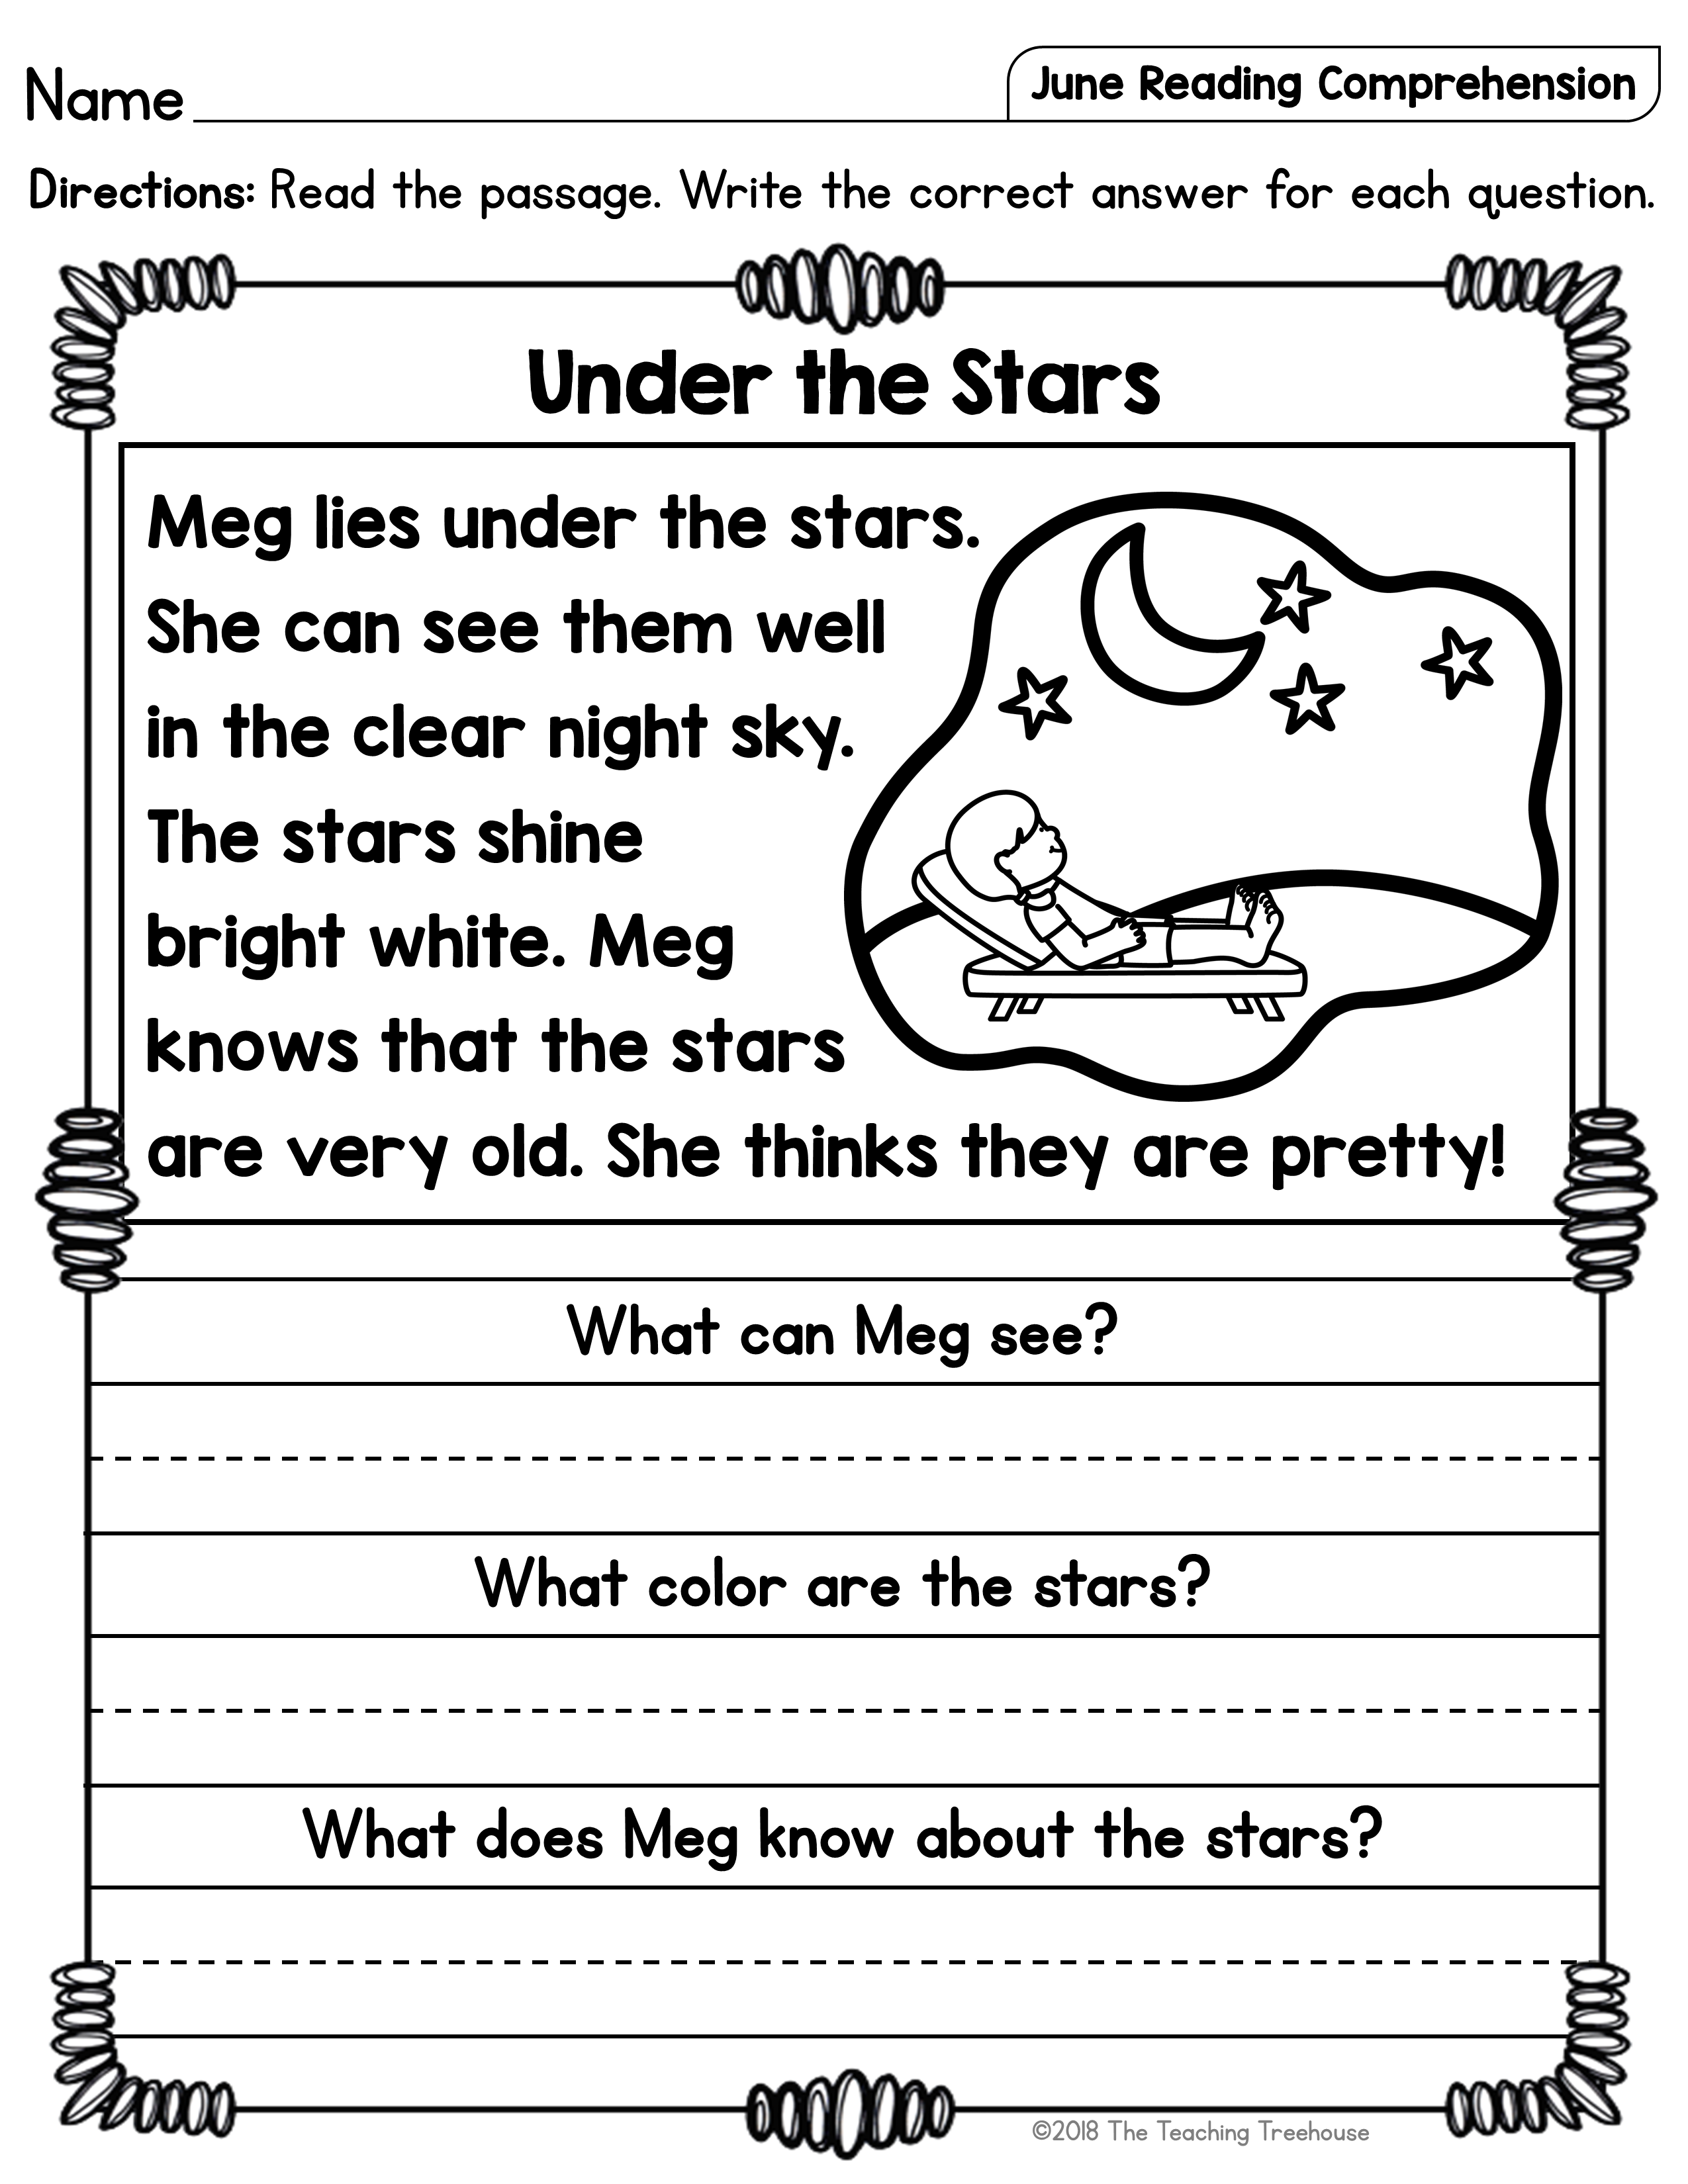 - June Reading Comprehension Passages For Kindergarten And First